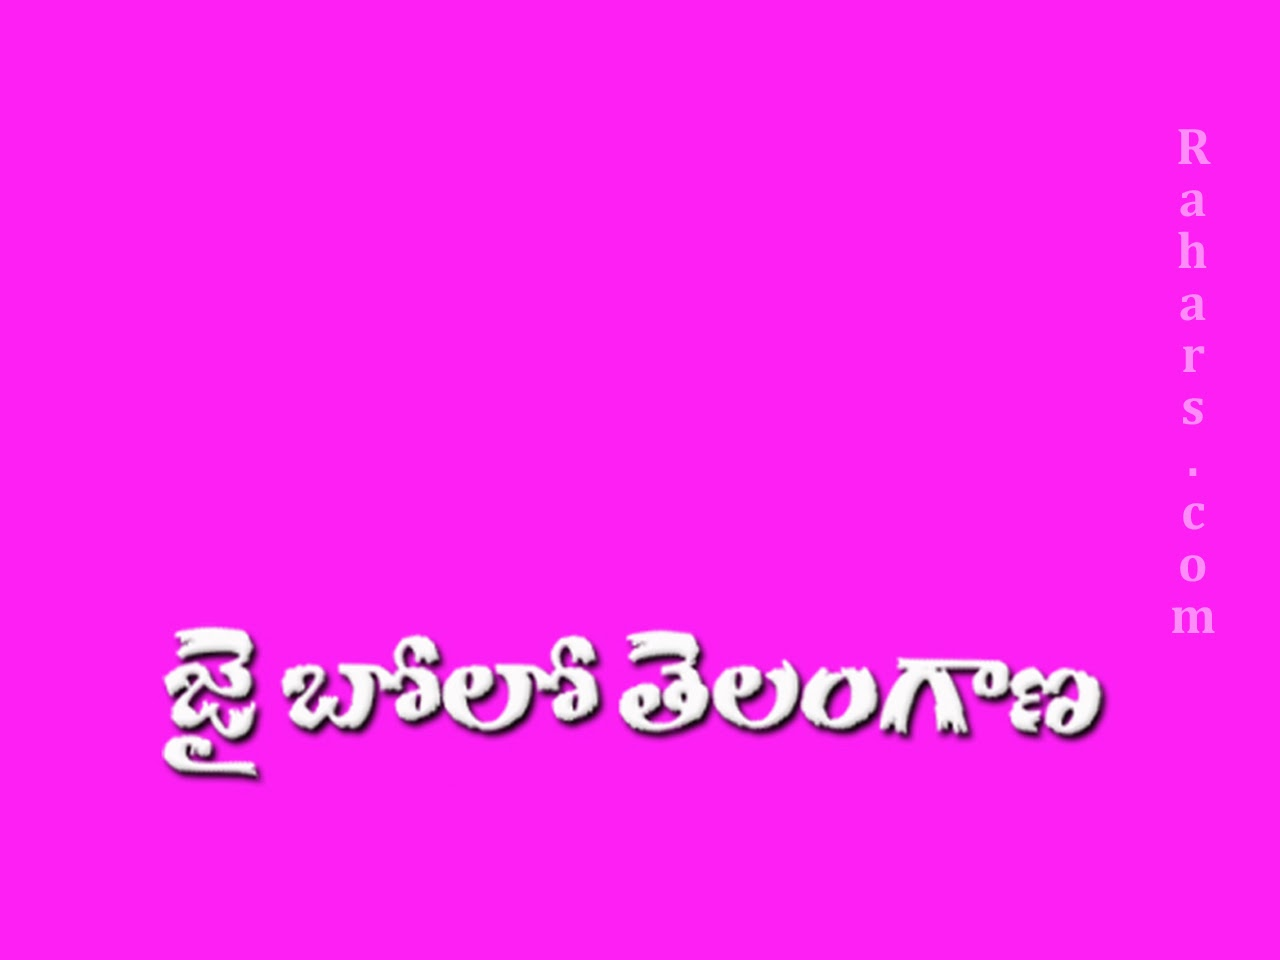 Jai Telangana wallpapers for Mobiles